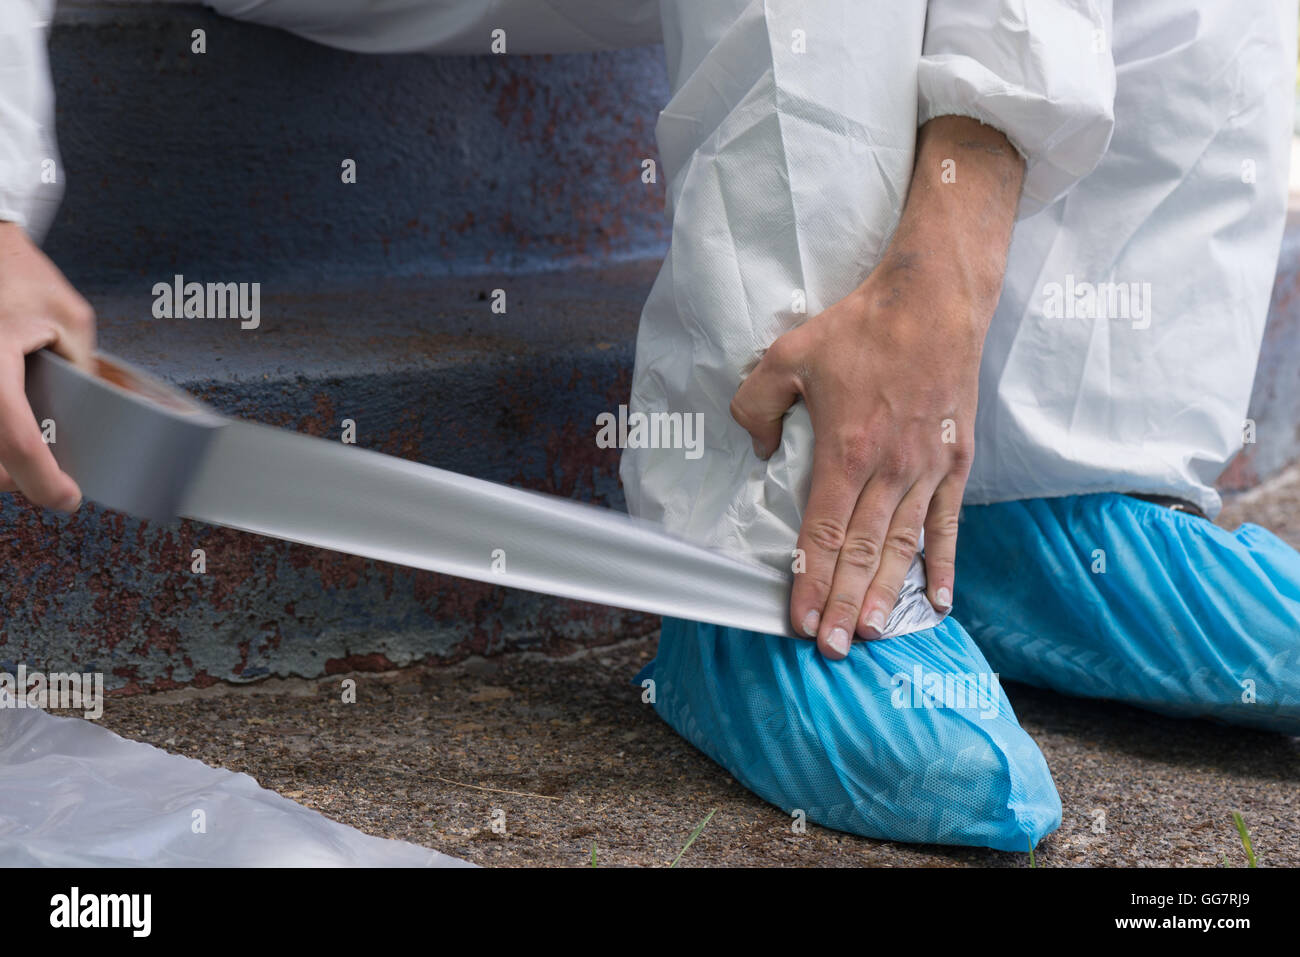 A house painter secures the ankles of his hazmat suit preparing to safely remove lead paint. - Stock Image